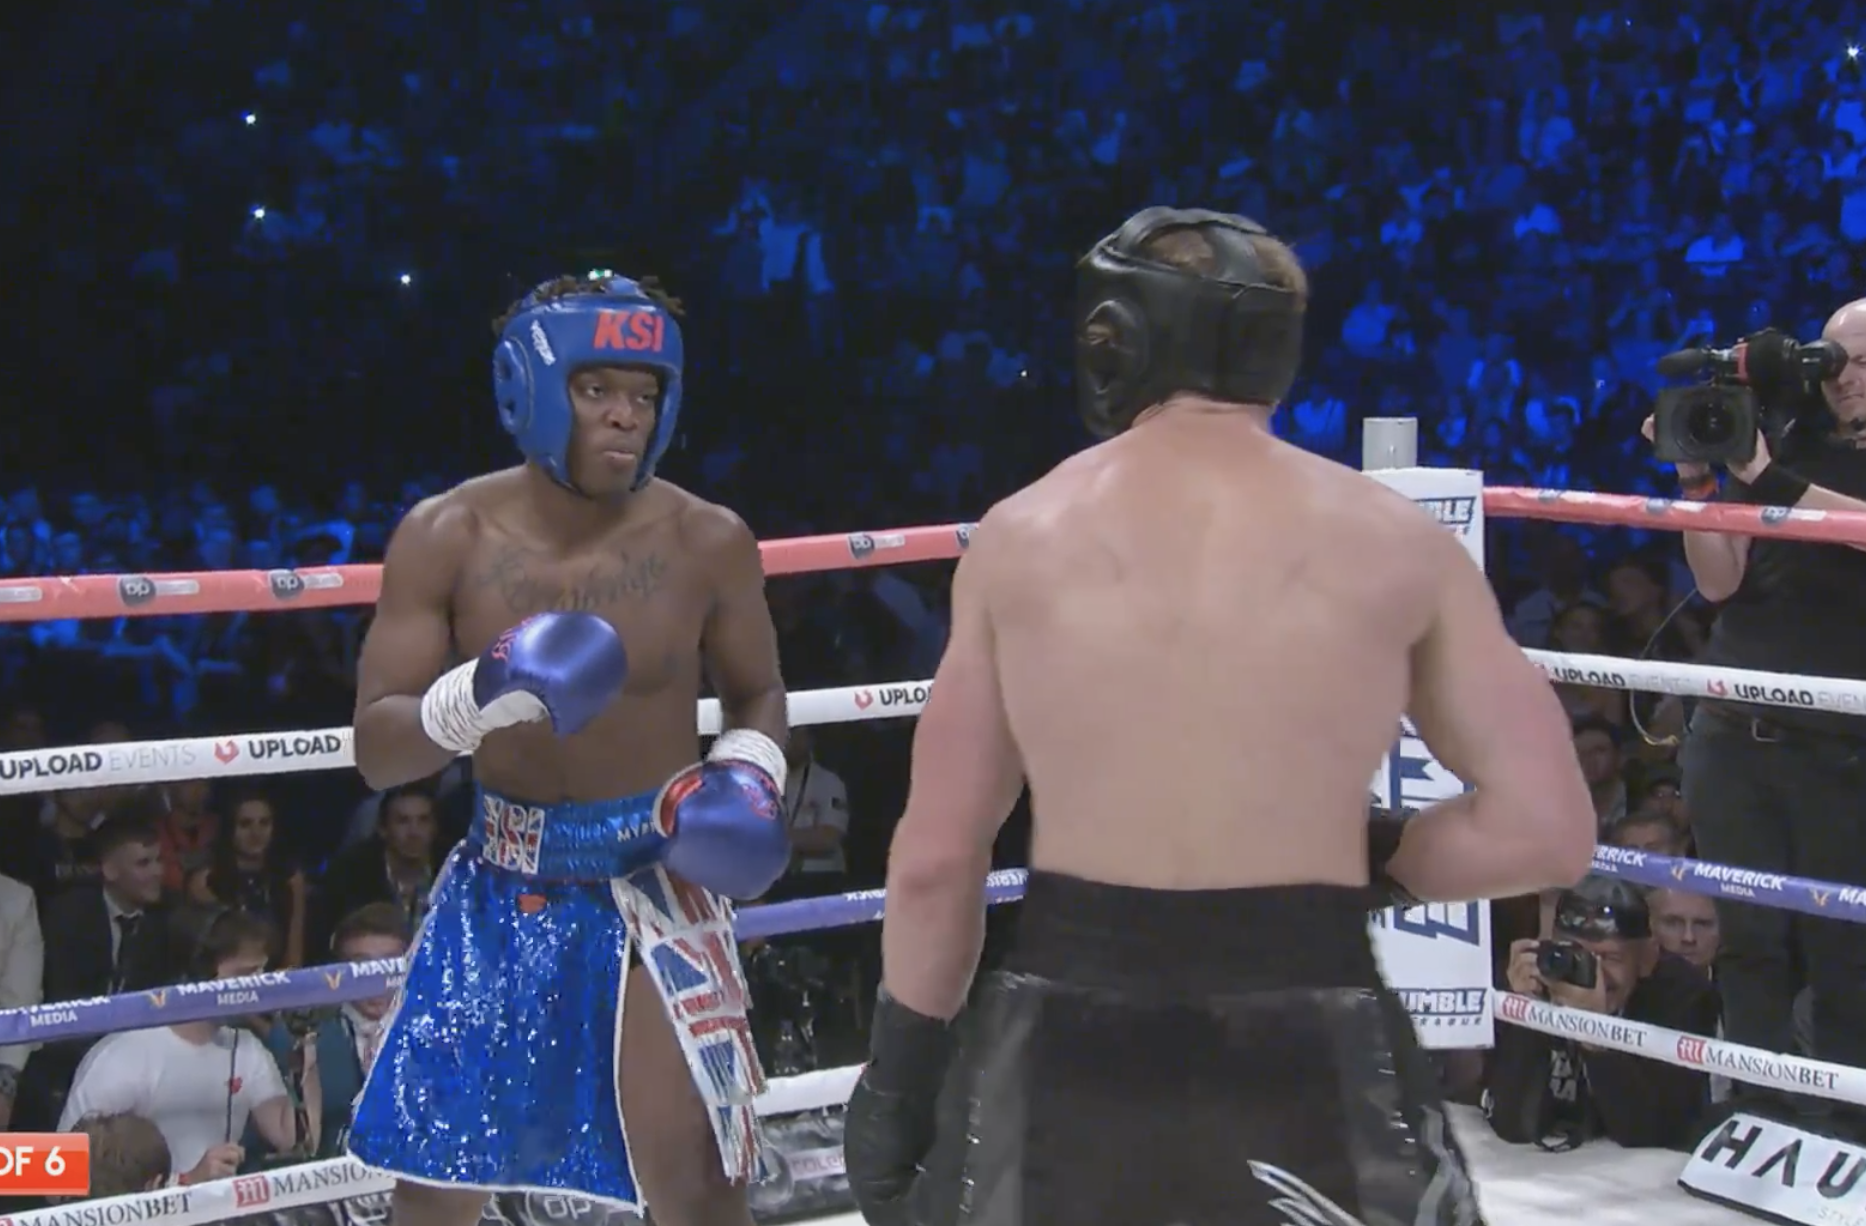 KSI v Logan Paul II: What Does This Fight Mean For Boxing?